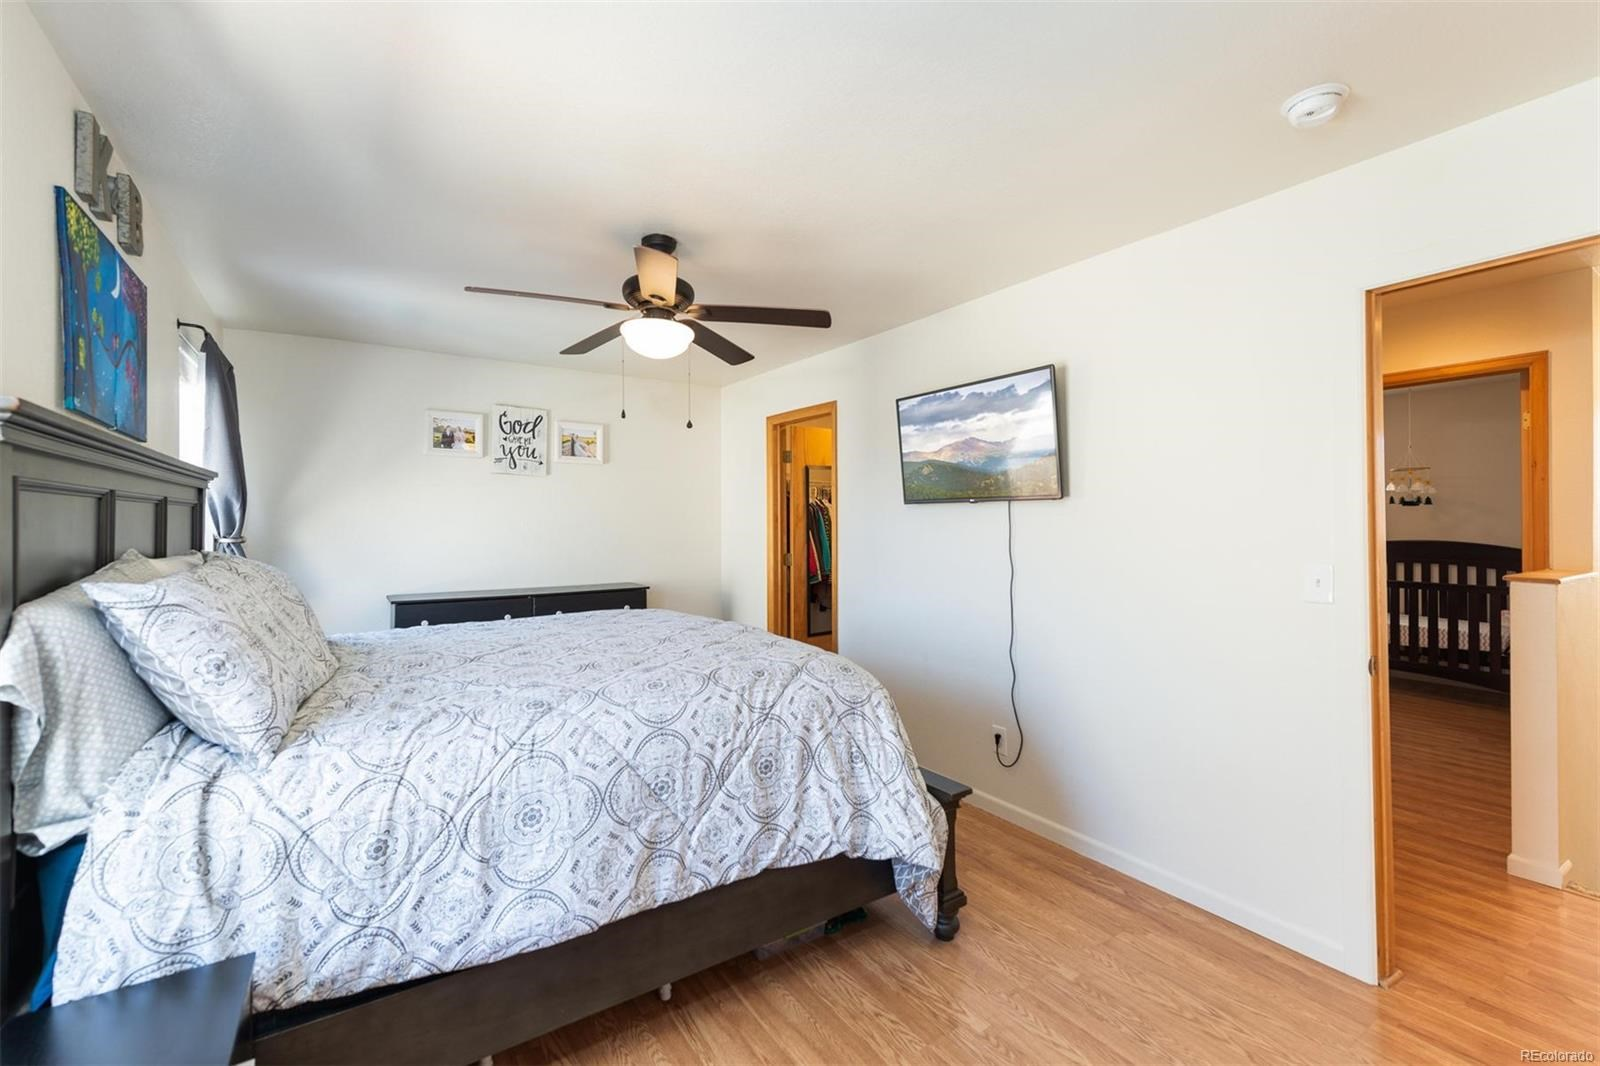 MLS# 6800957 - 9 - 8891 Lowell Way, Westminster, CO 80031